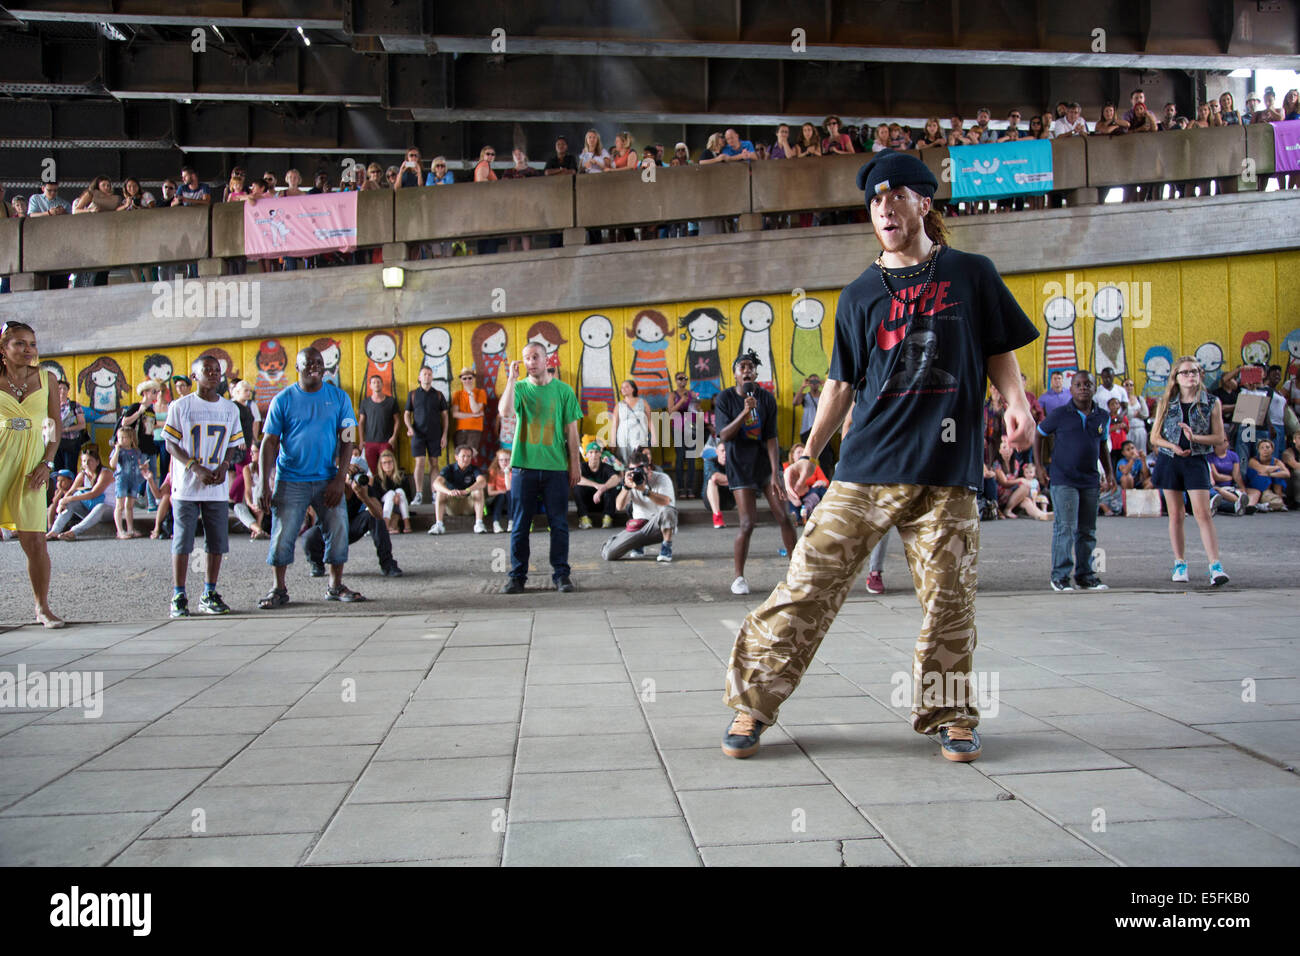 """urban tribes in the uk In modern britain the idea of """"tribe"""" means little or nothing, and we find people   some people talk about urban tribes or similar but that is politics not ethnicity."""